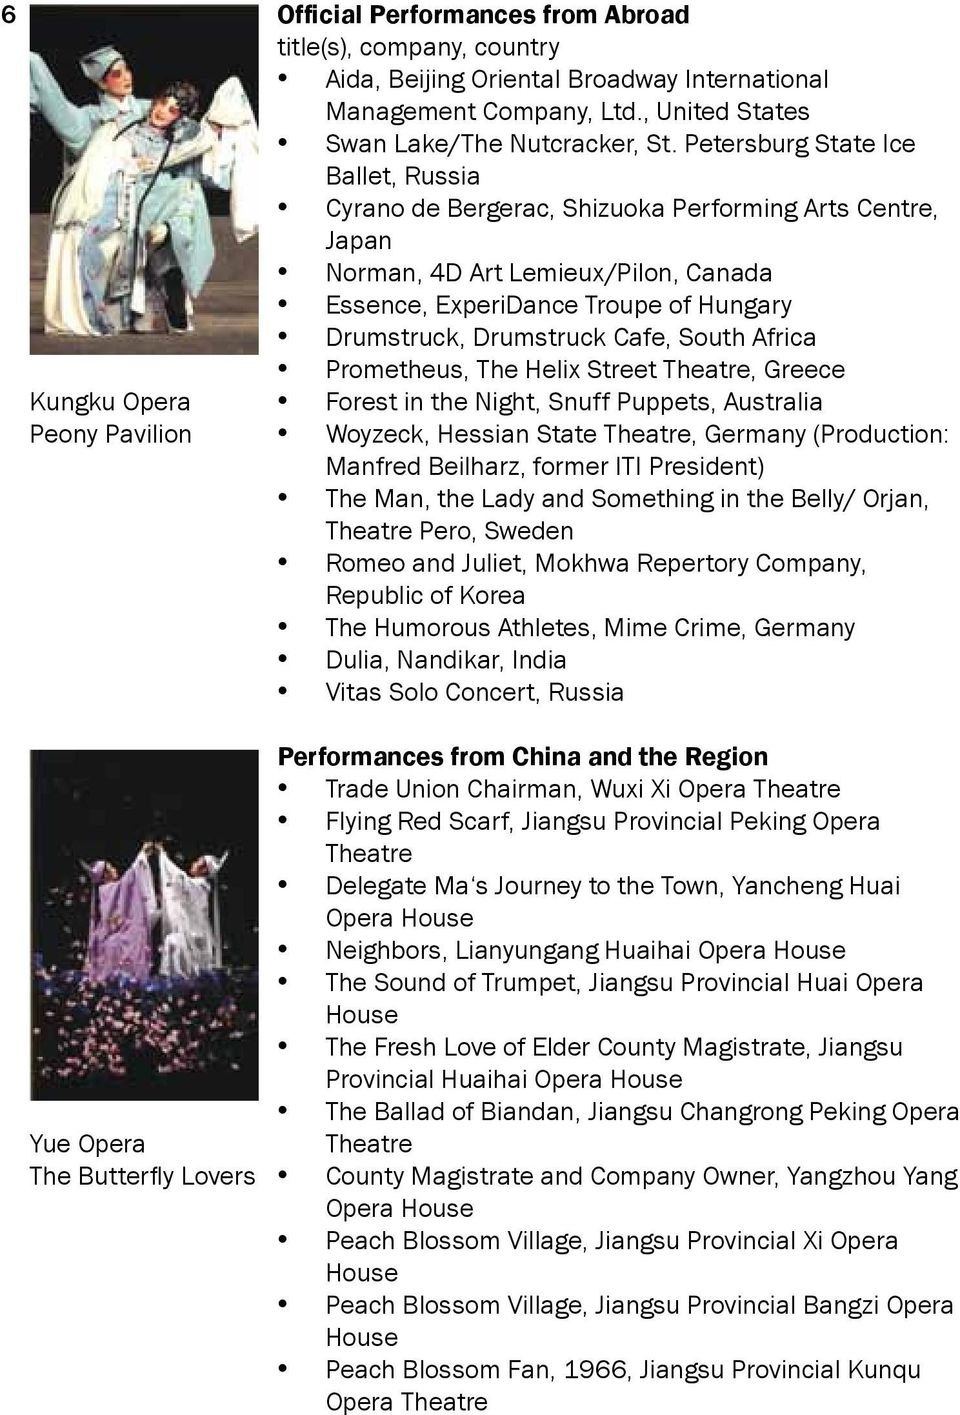 Petersburg State Ice Ballet, Russia Cyrano de Bergerac, Shizuoka Performing Arts Centre, Japan Norman, 4D Art Lemieux/Pilon, Canada Essence, ExperiDance Troupe of Hungary Drumstruck, Drumstruck Cafe,